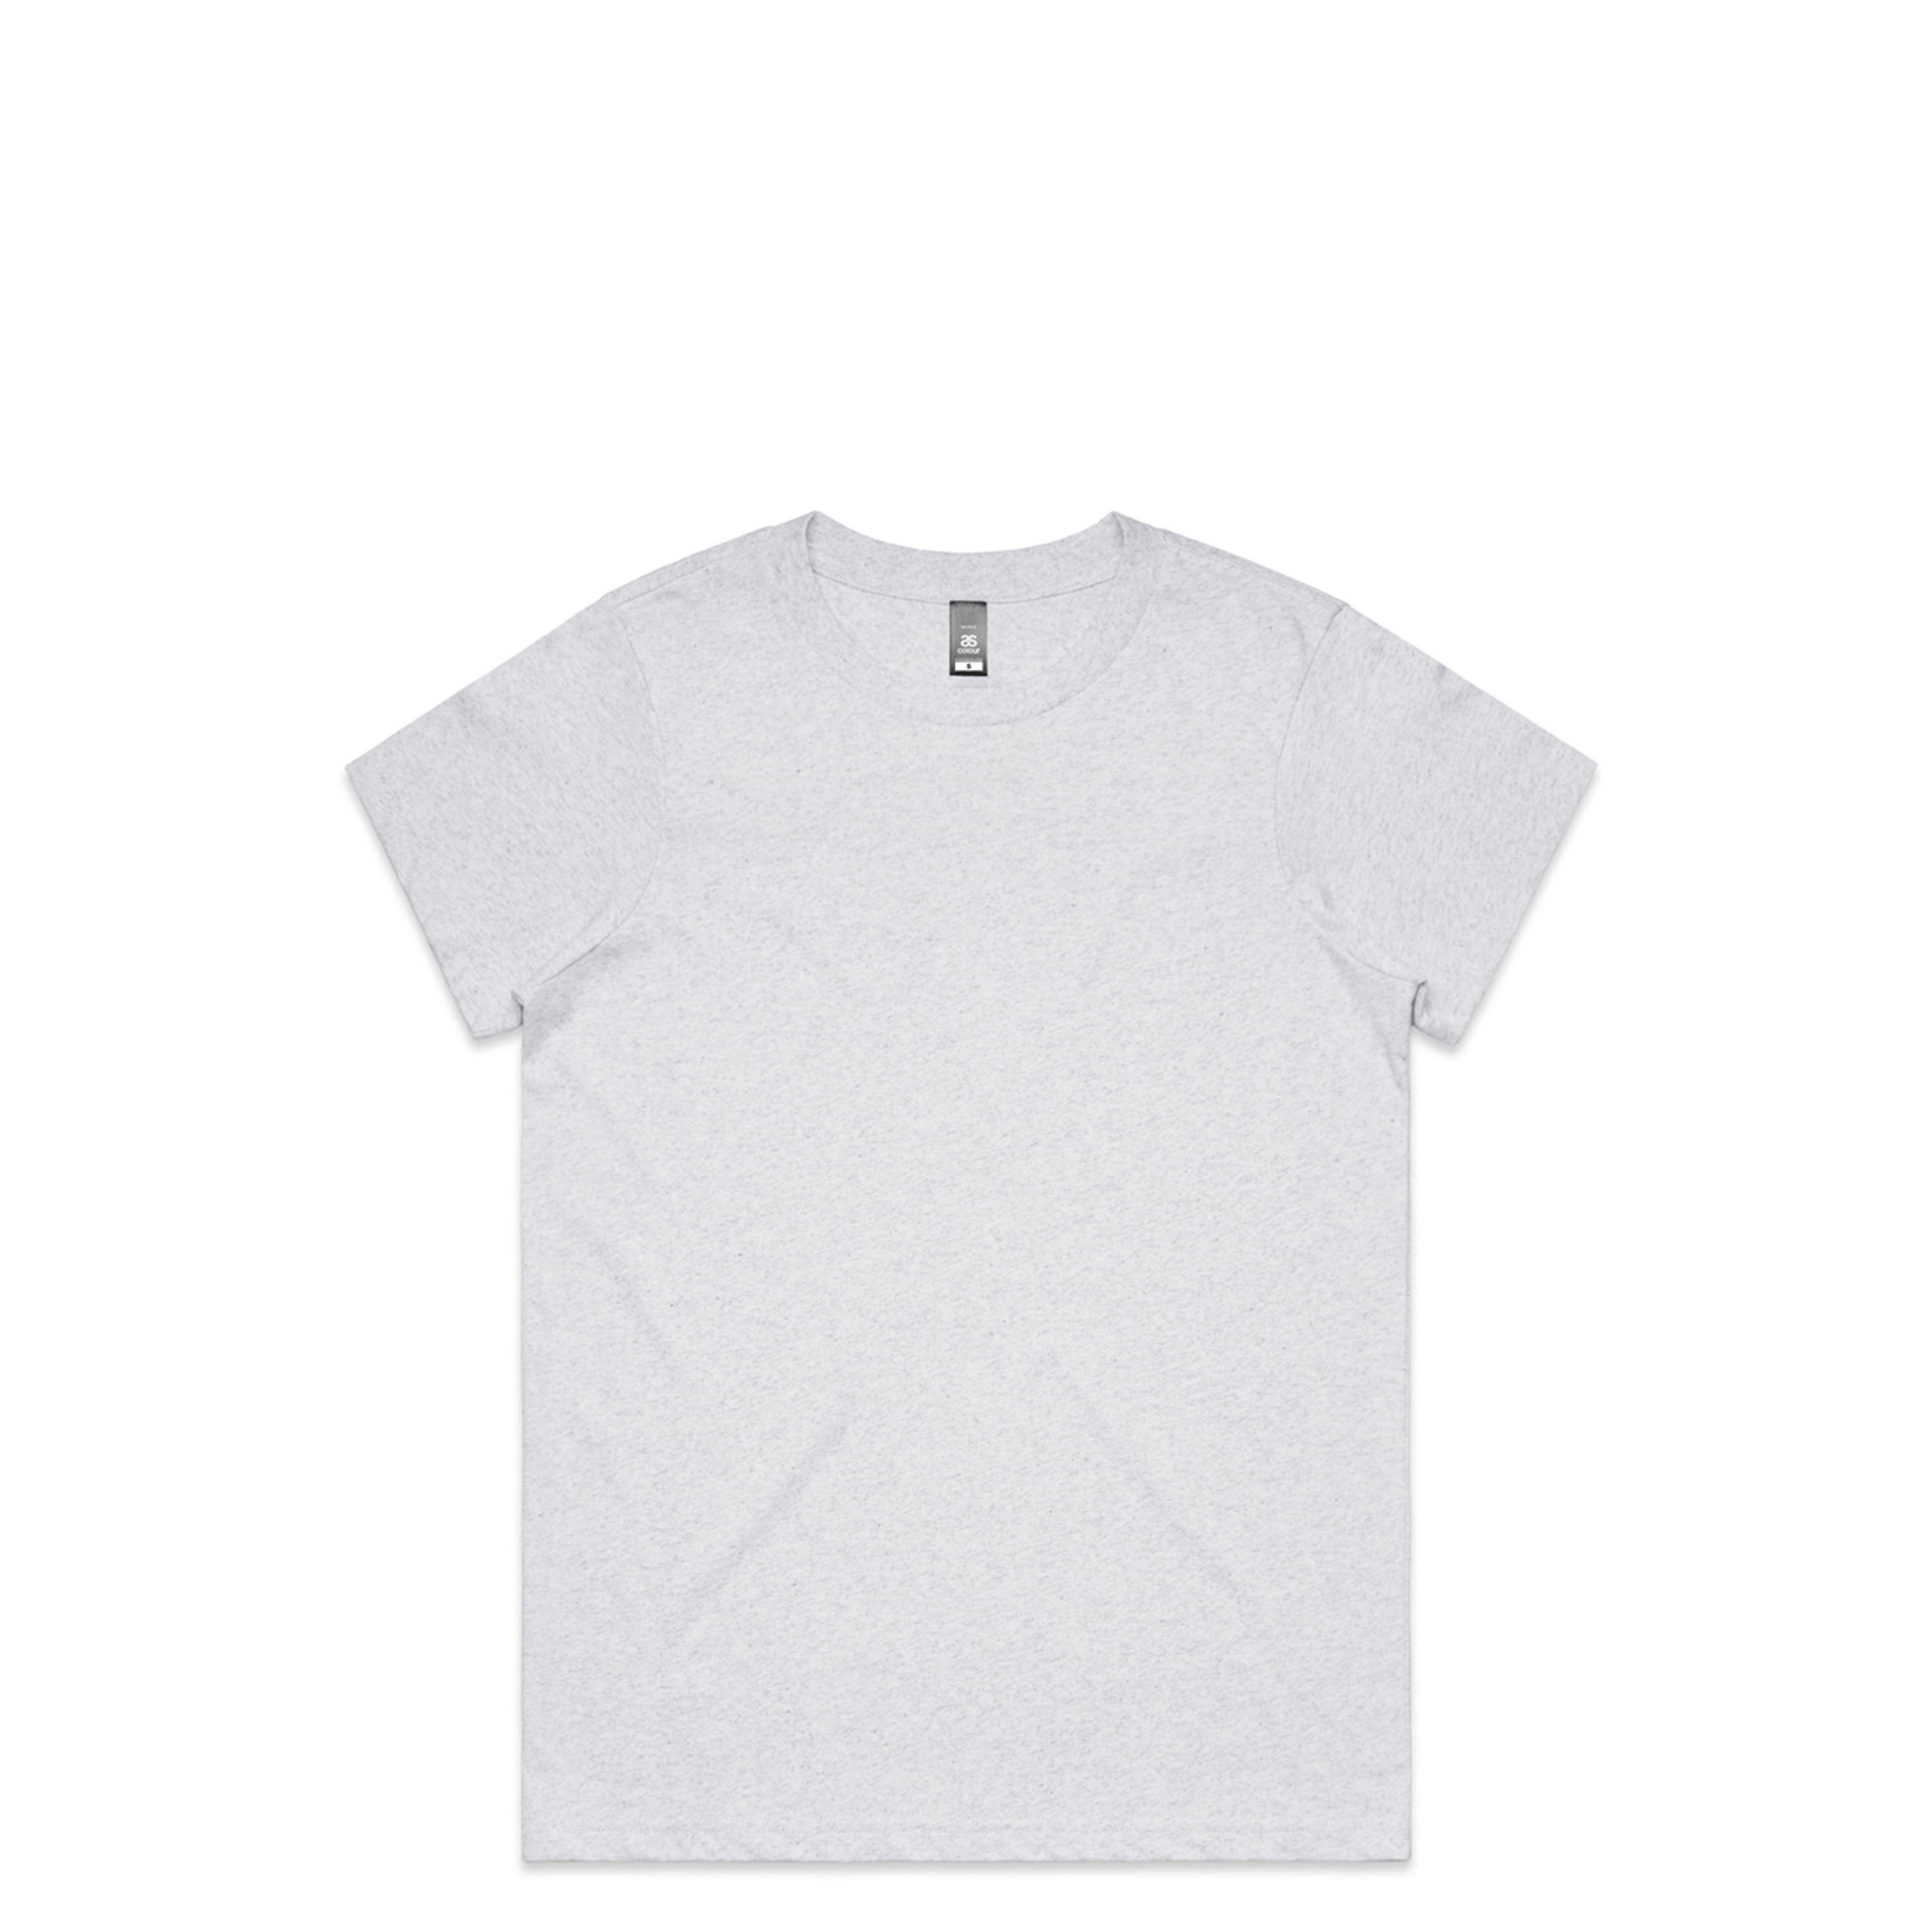 Wo's Maple Marle Tee - 4001M